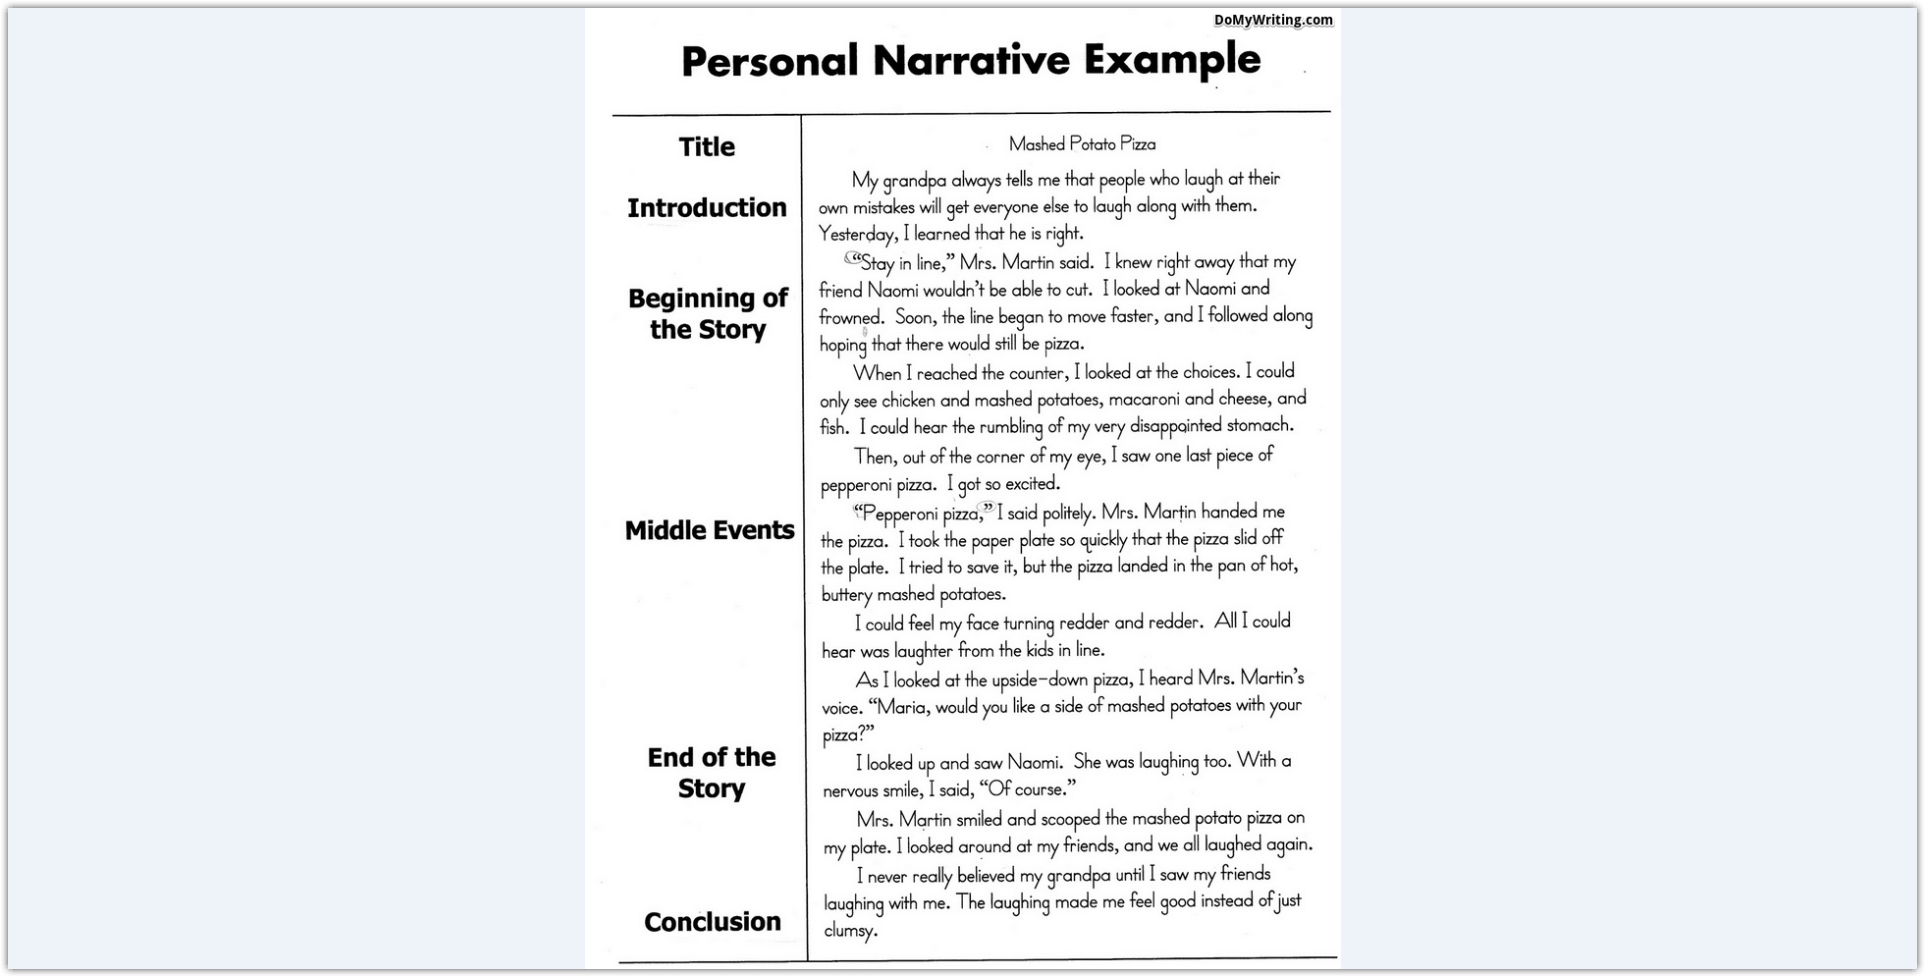 Narrative descriptive essay samples